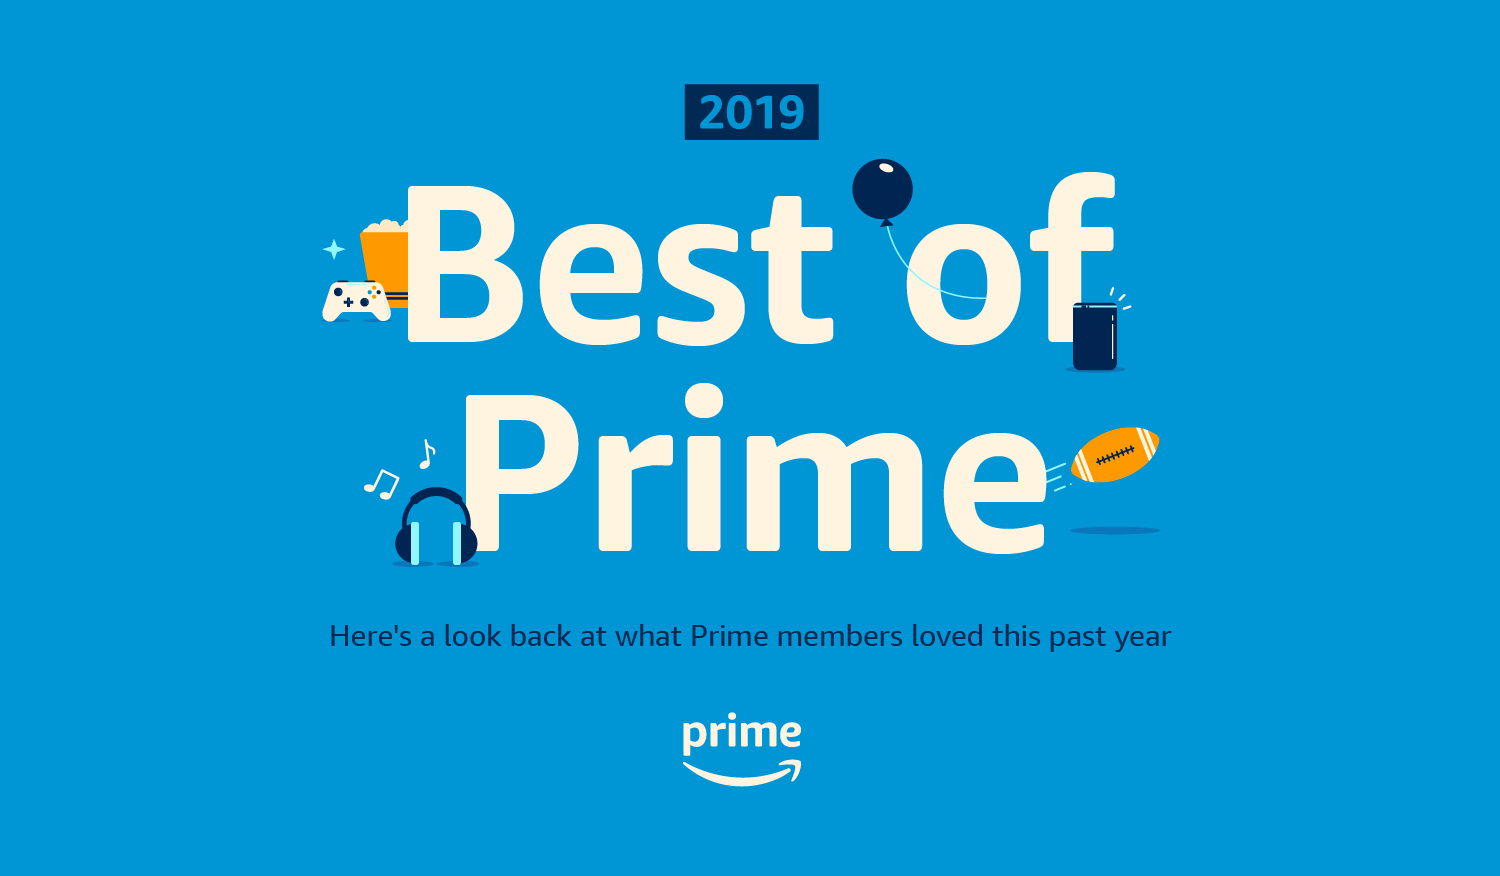 2019 Best of Prime: Here's a look back at what Prime members loved this past year